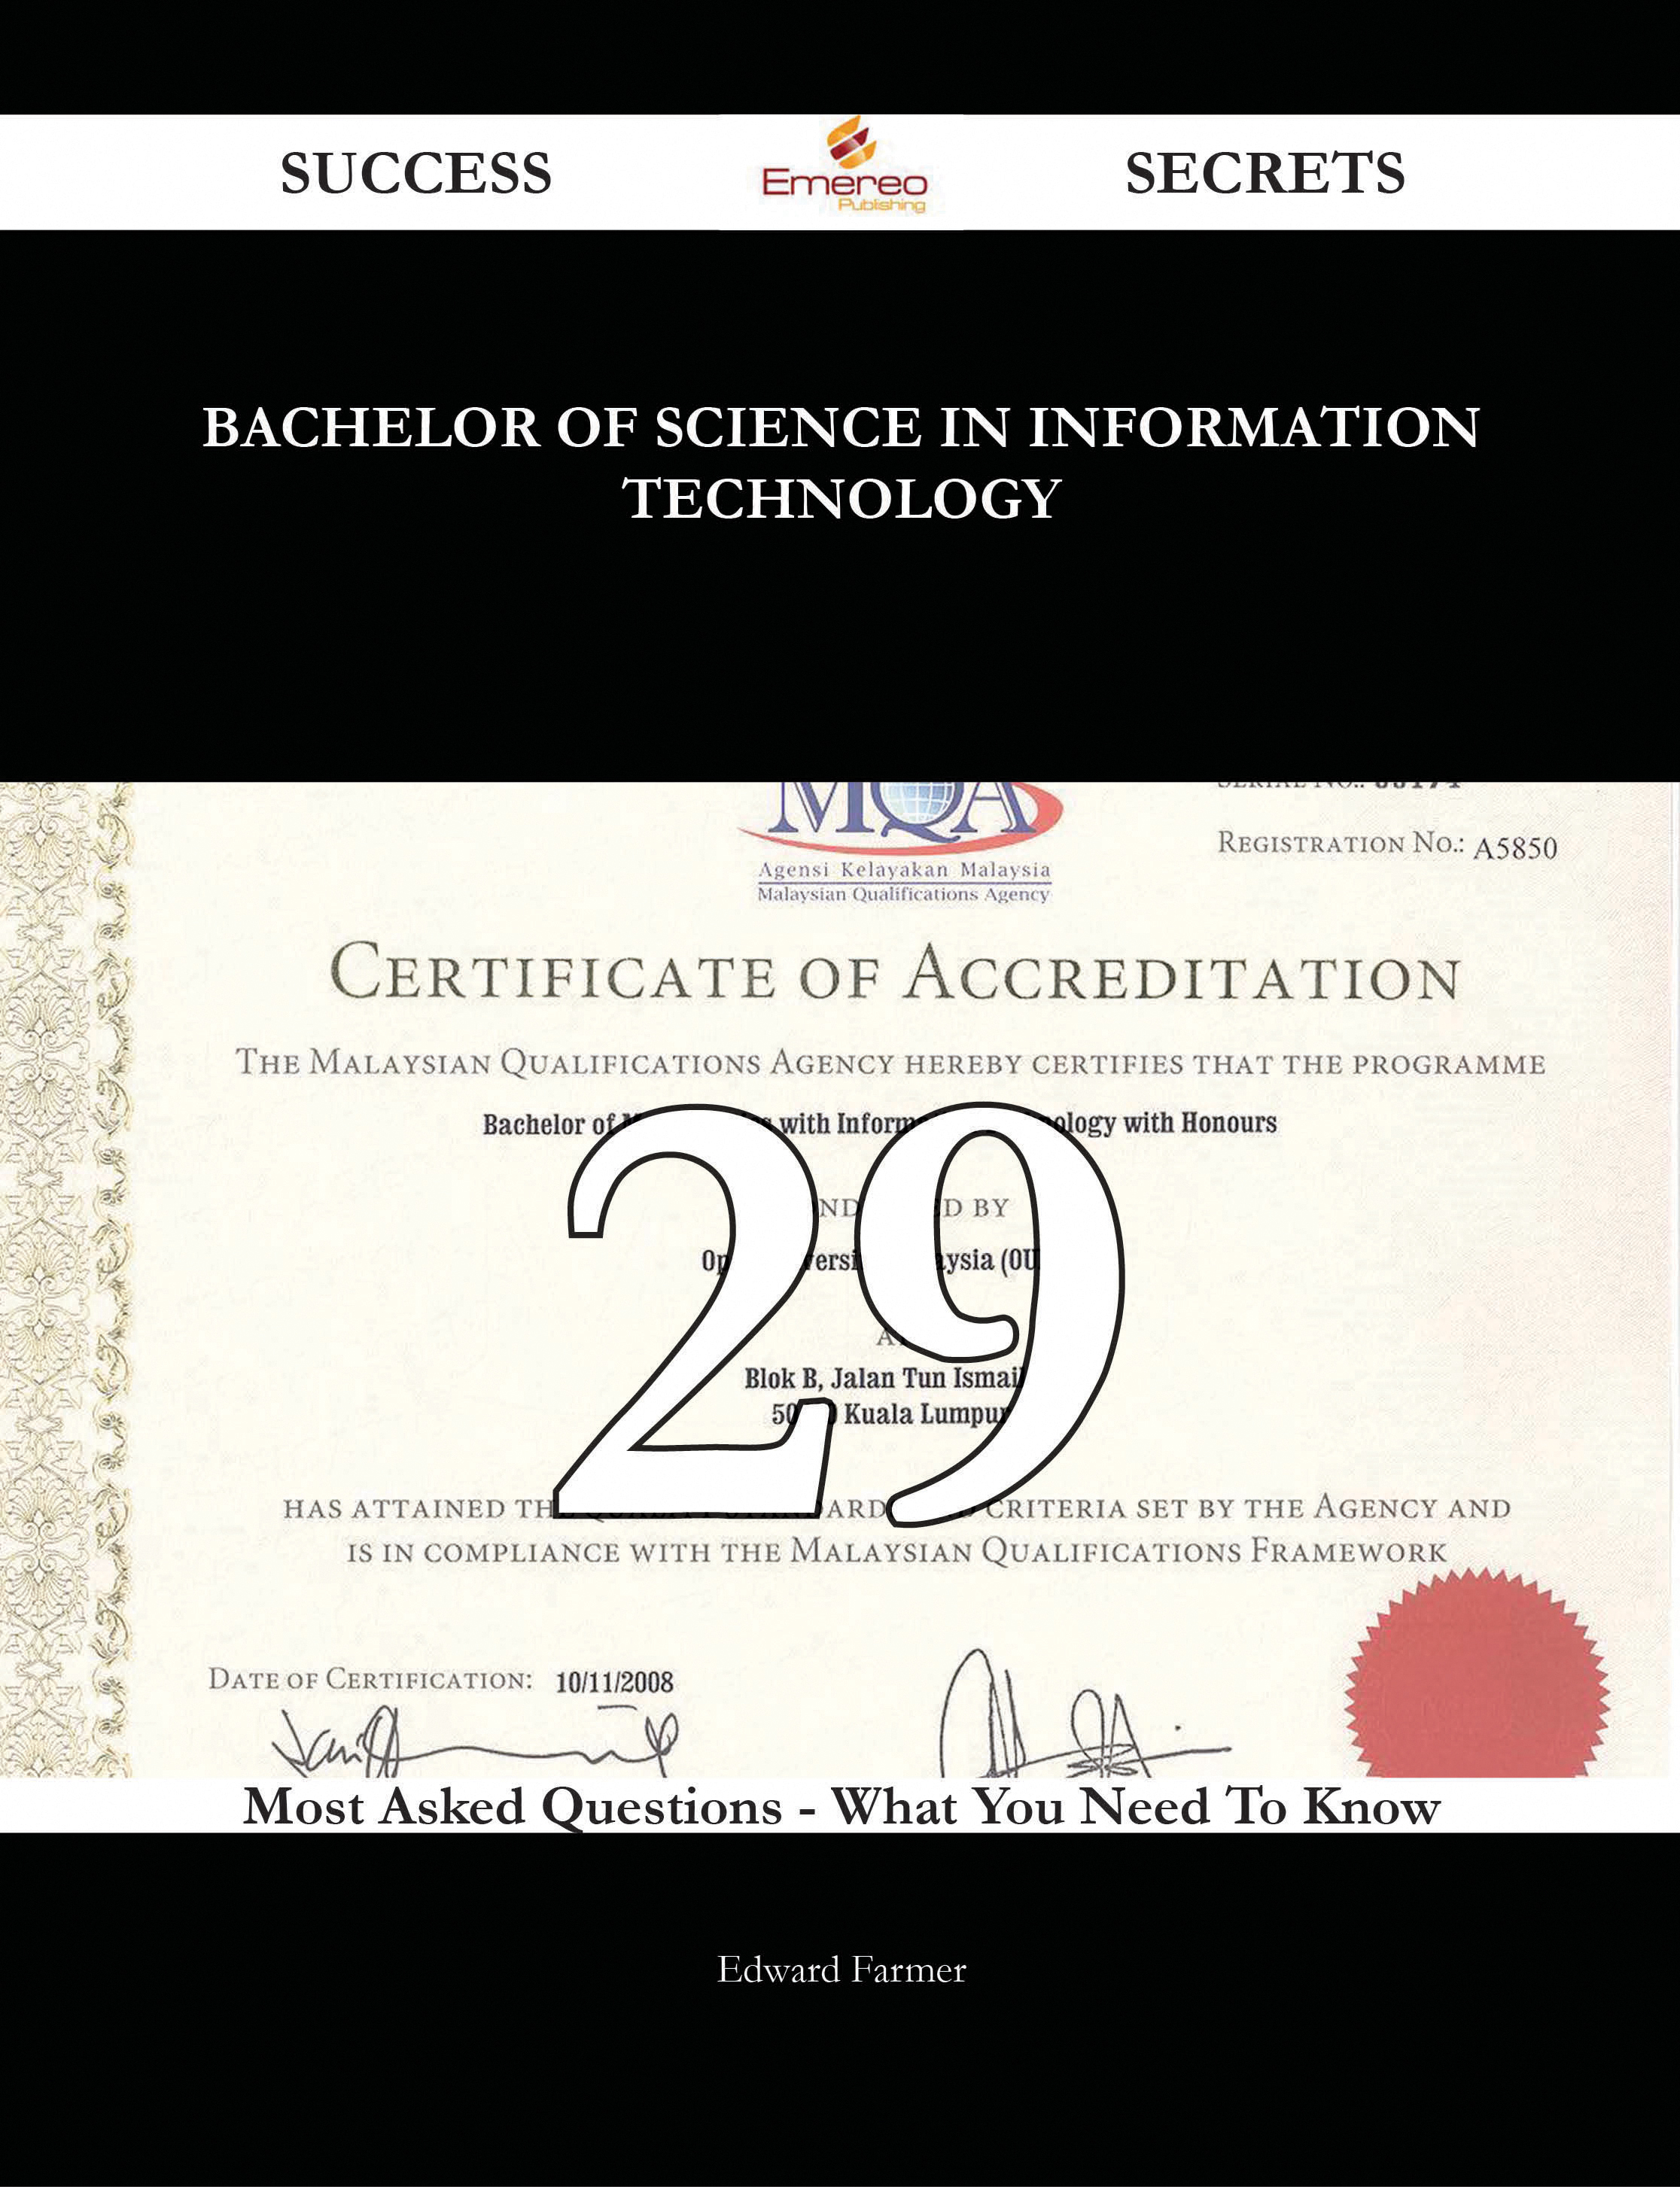 Bachelor of Science in Information Technology 29 Success Secrets - 29 Most Asked Questions On Bachelor of Science in Information Technology - What You Need To Know